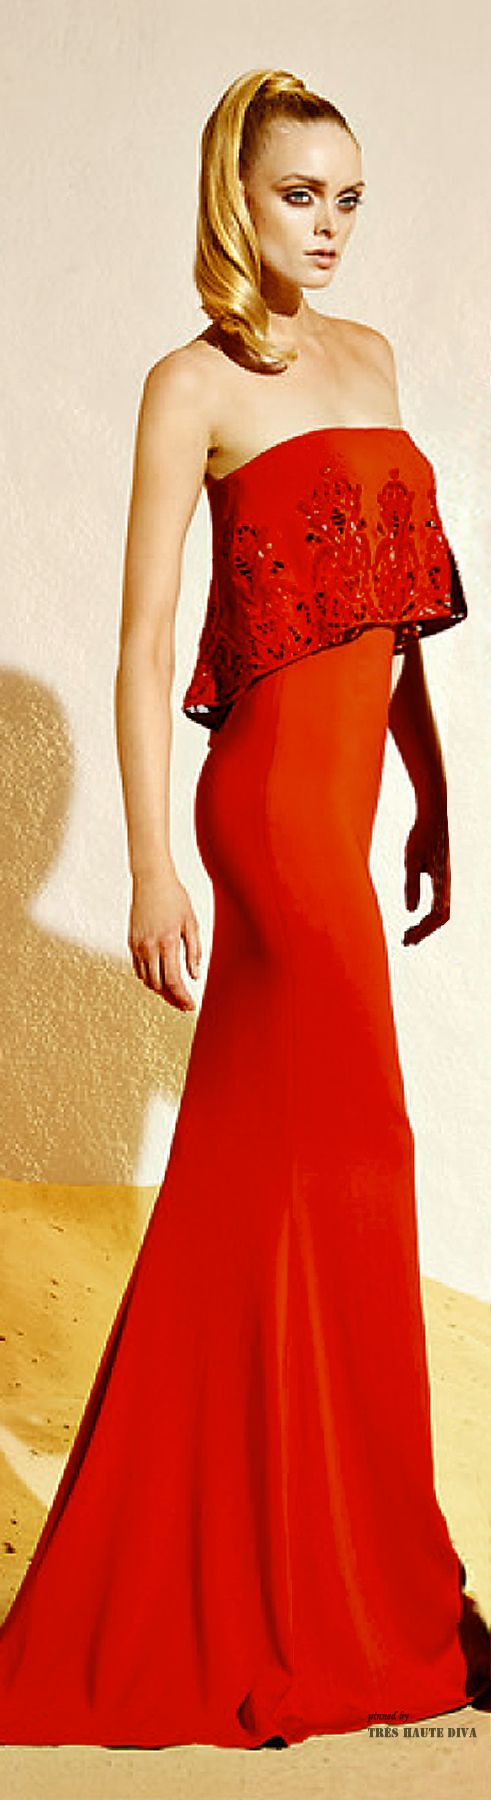 Wedding - Gowns...Ravishing Reds